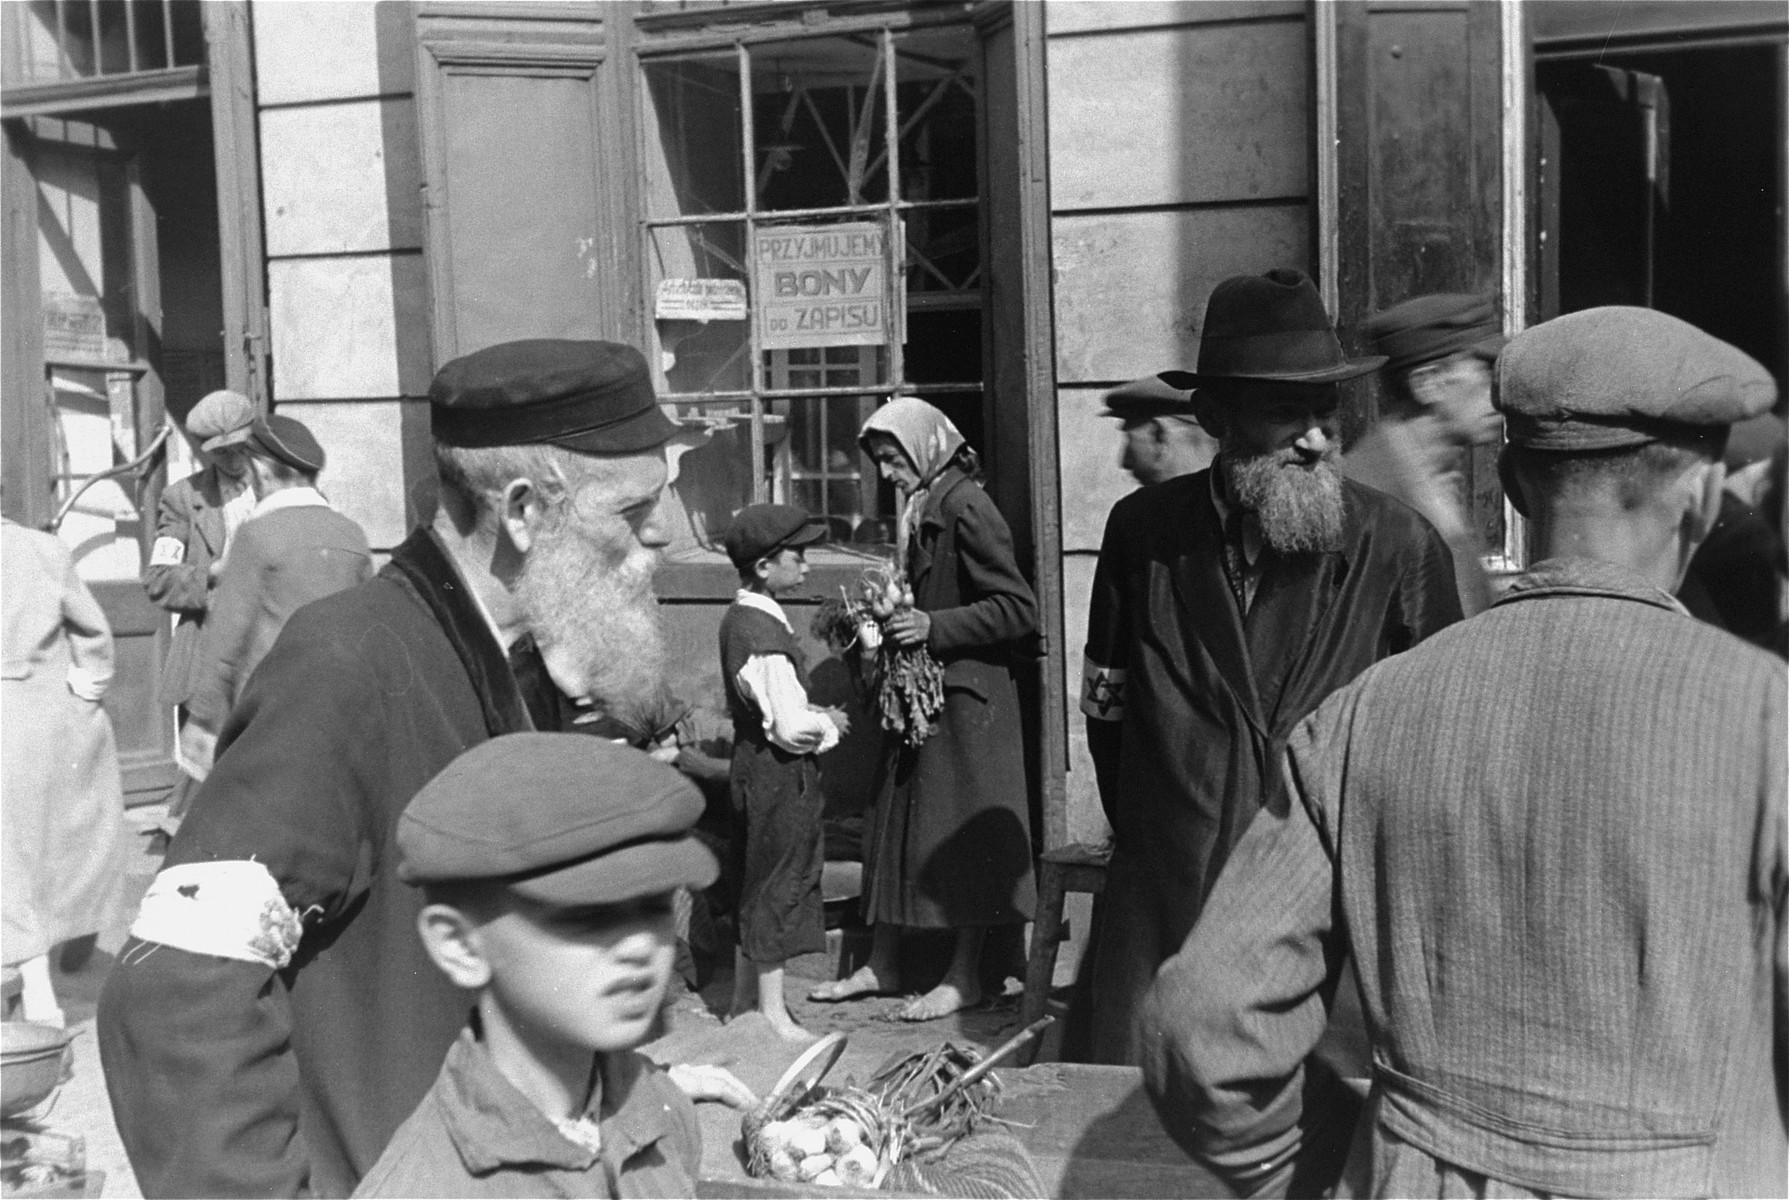 Ghetto residents make purchases from street vendors in the Warsaw ghetto.